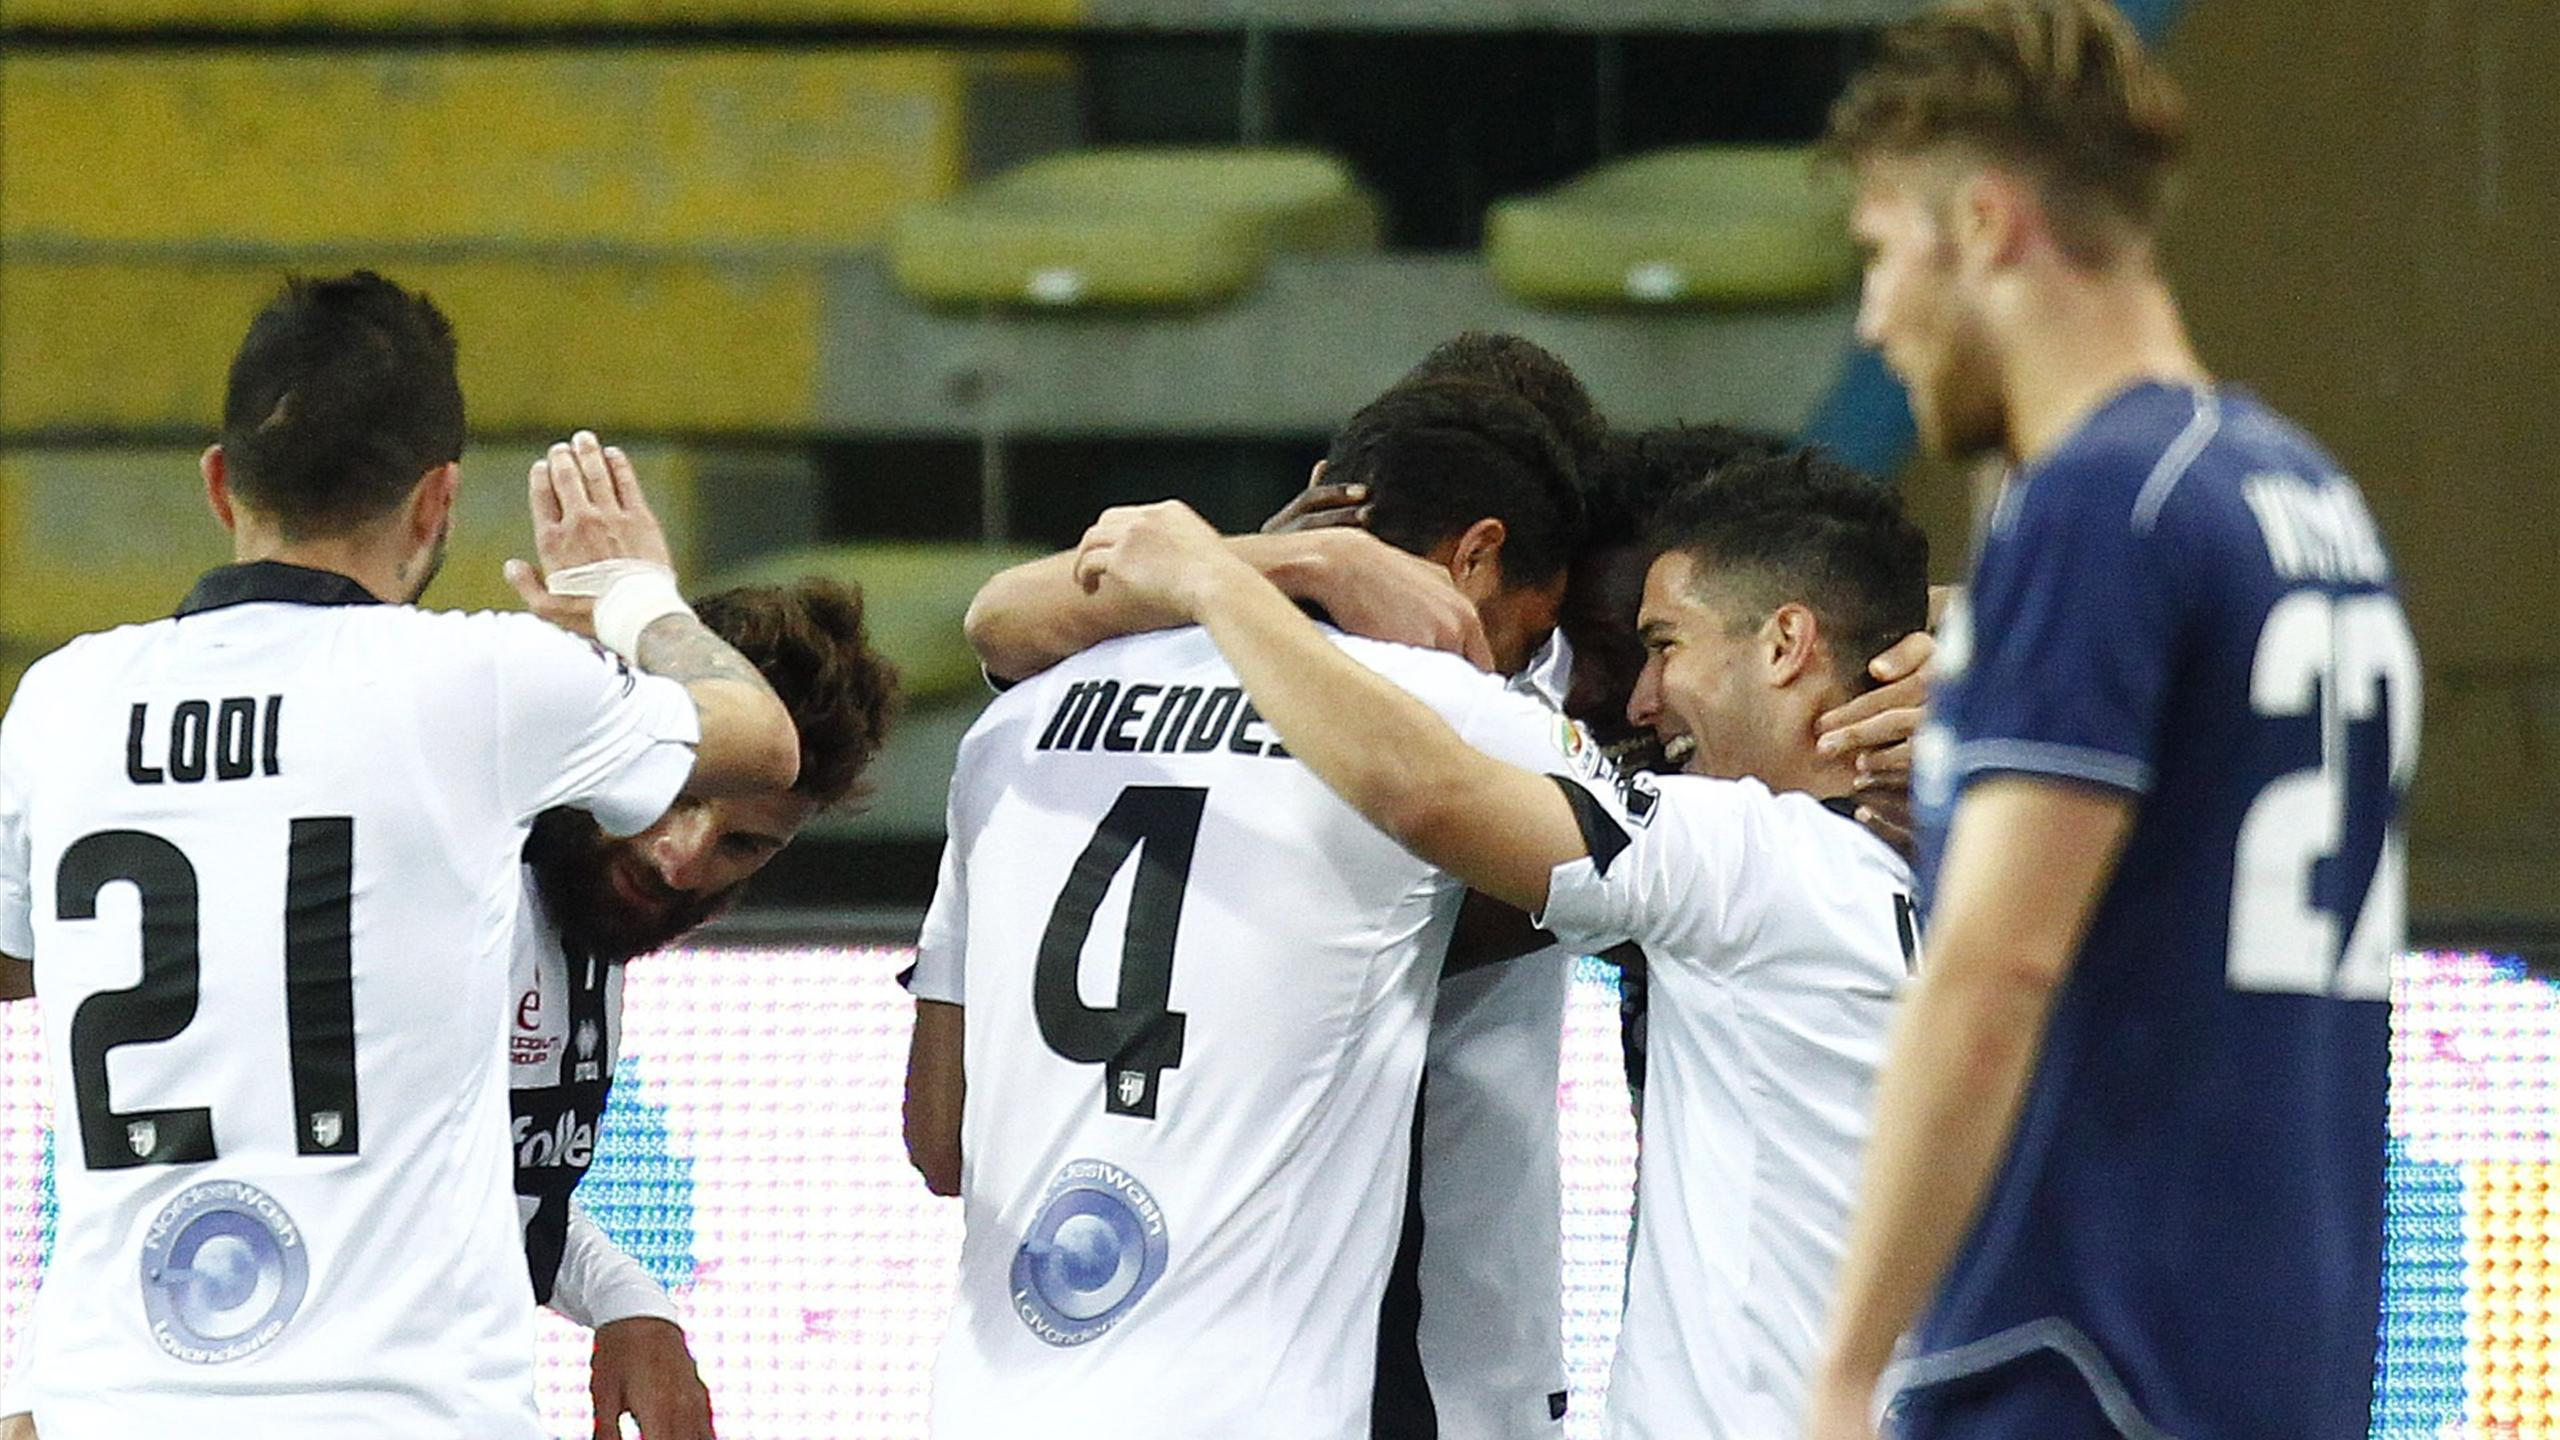 Video: Parma vs Udinese